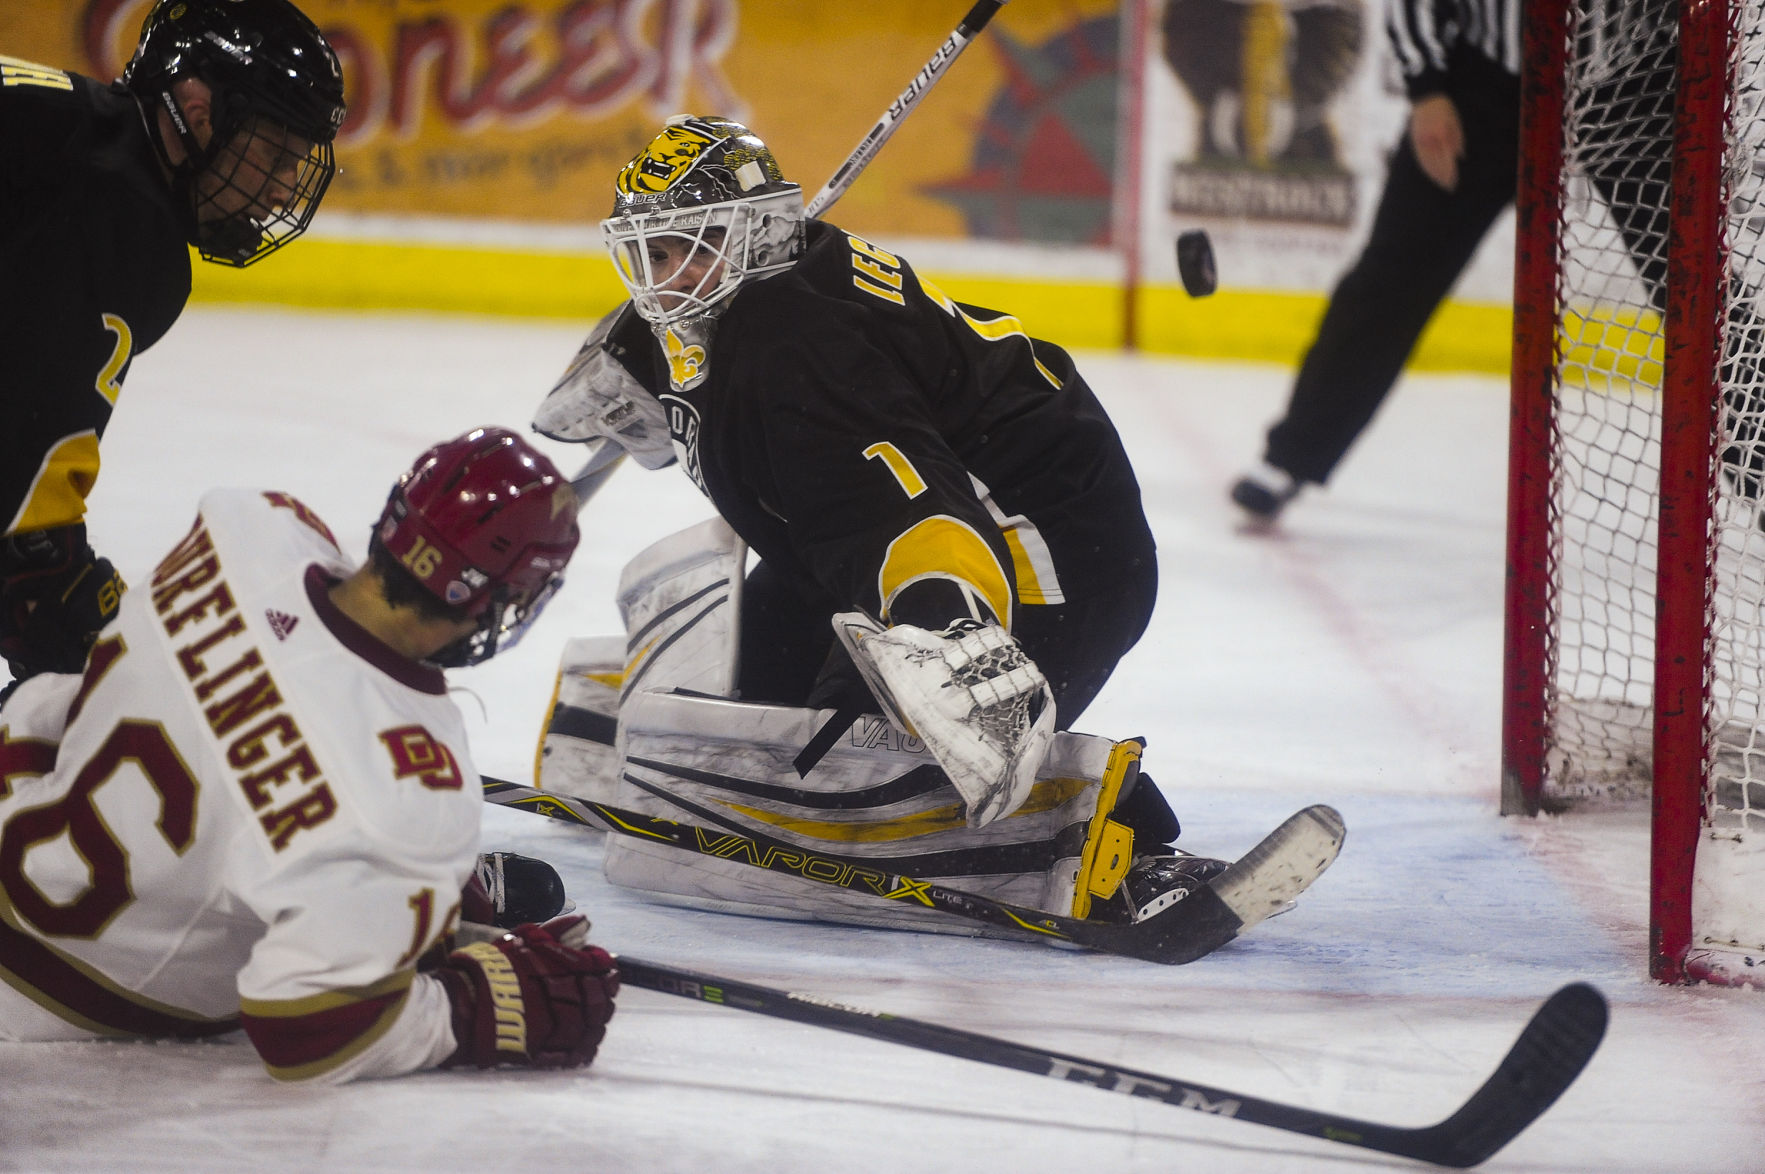 NCHC: A Year Has Made World Of Difference For Hockey Rivals Colorado College, Denver